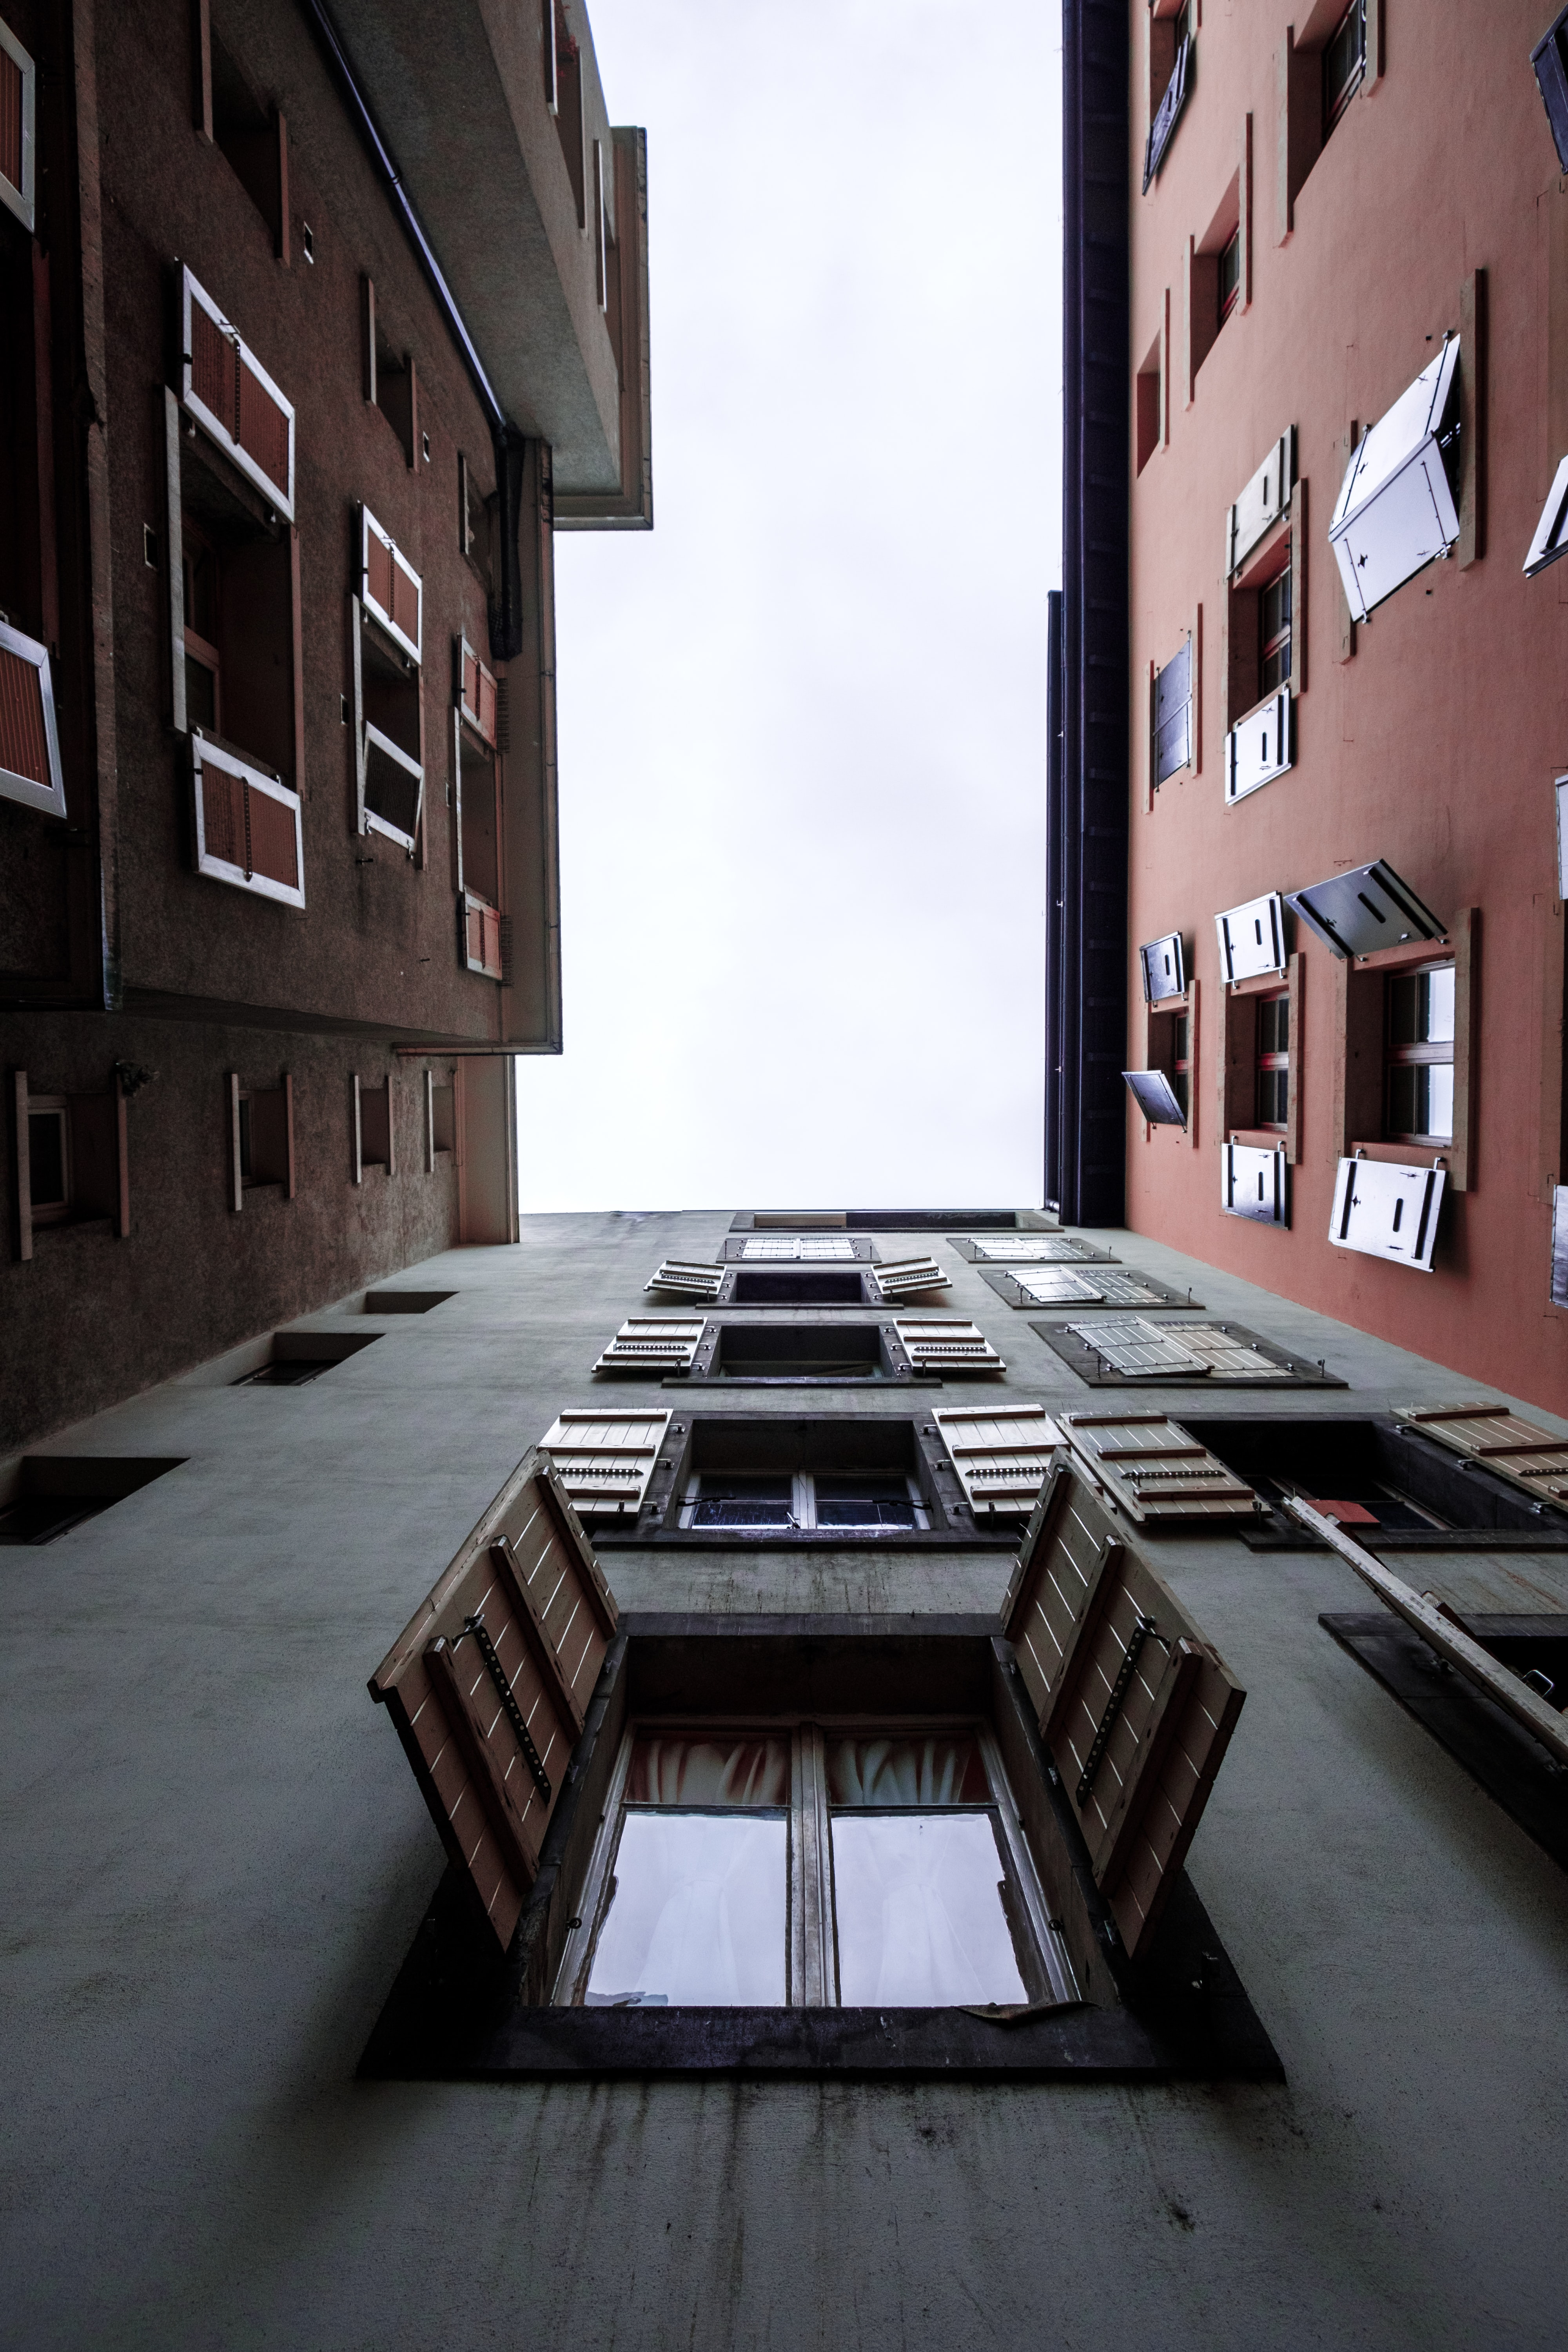 low angle photography of building with open windows at daytime